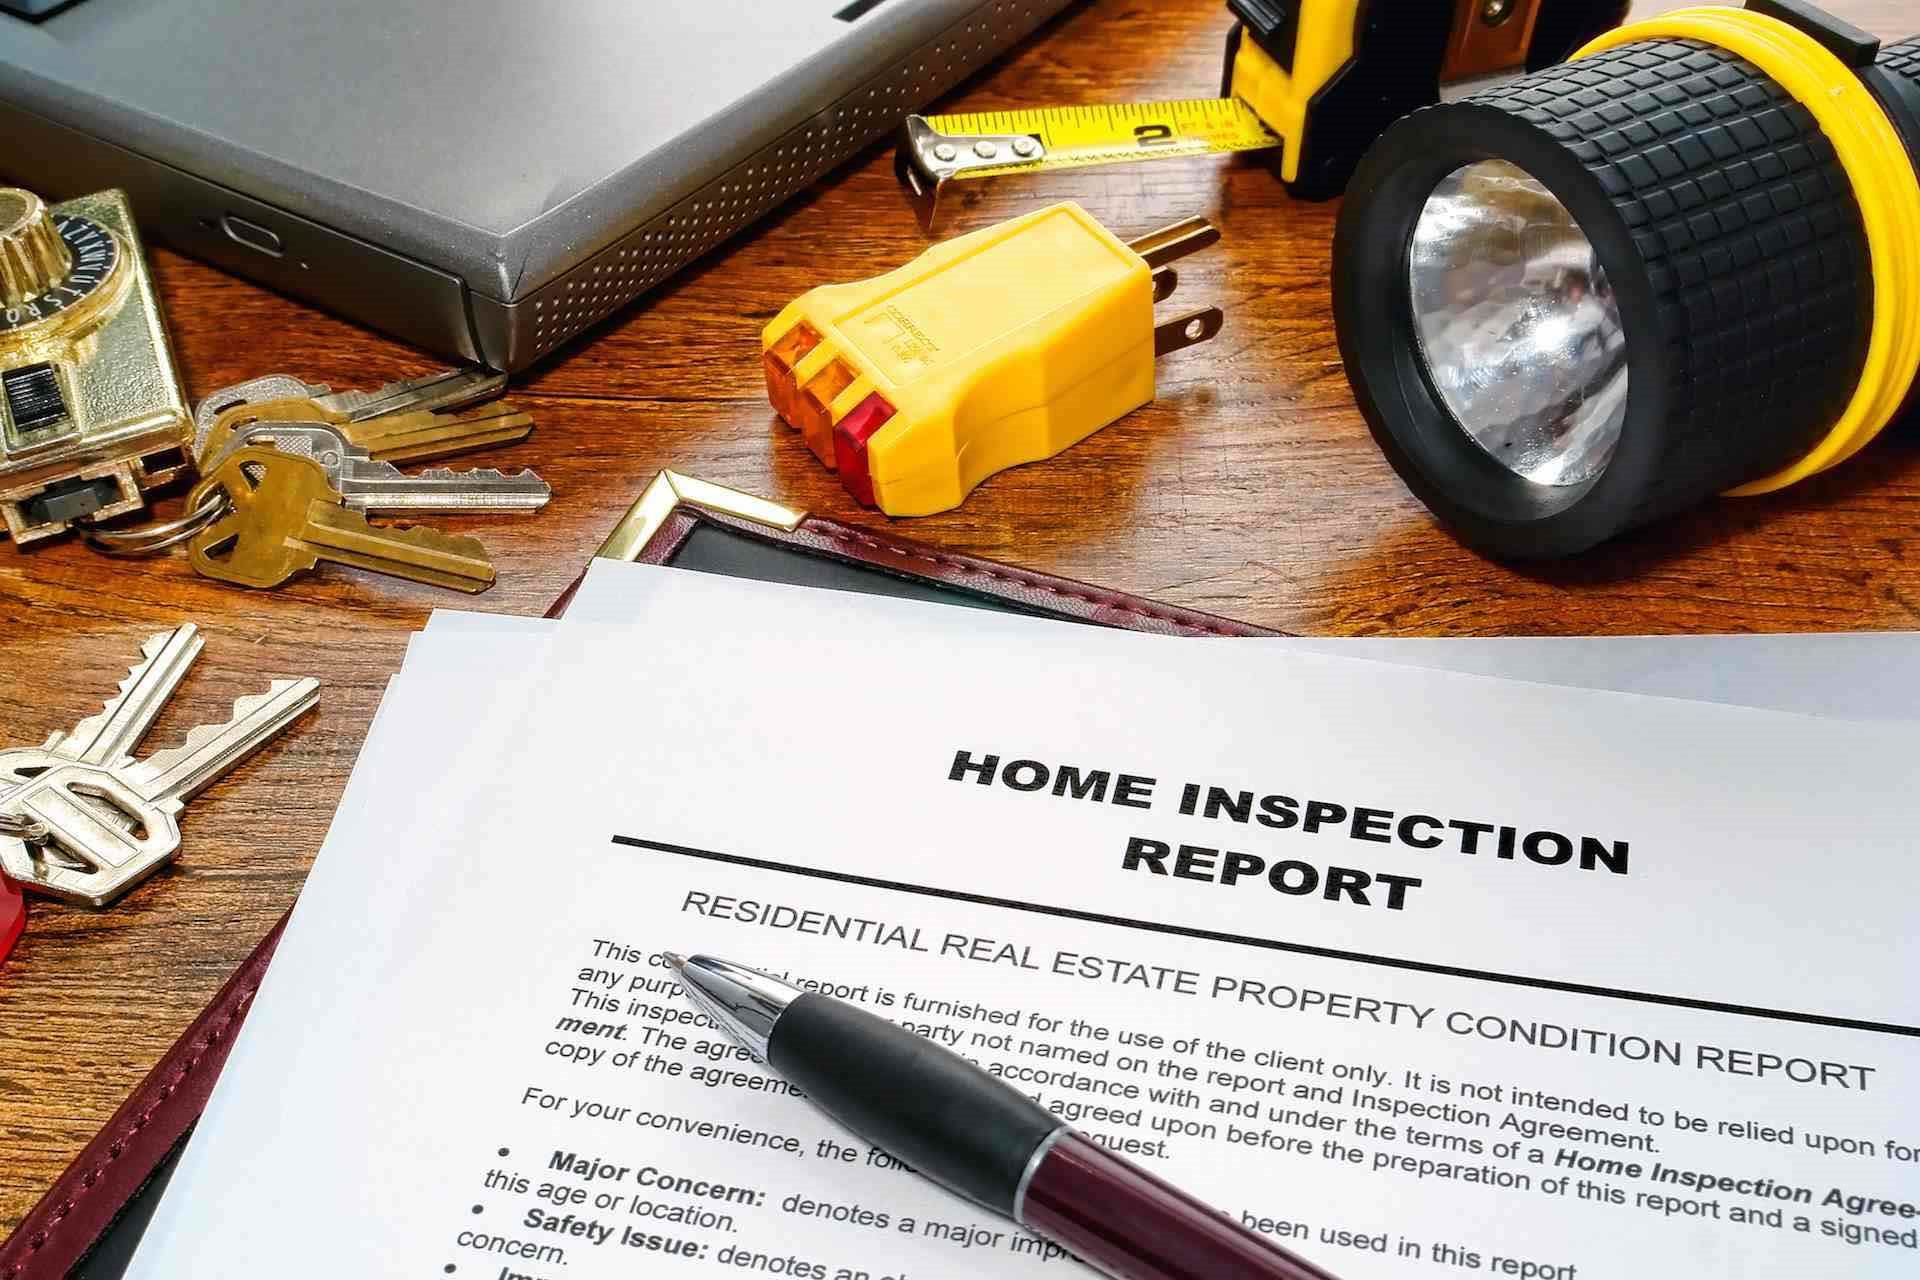 Finding a Home Inspector in NW Florida